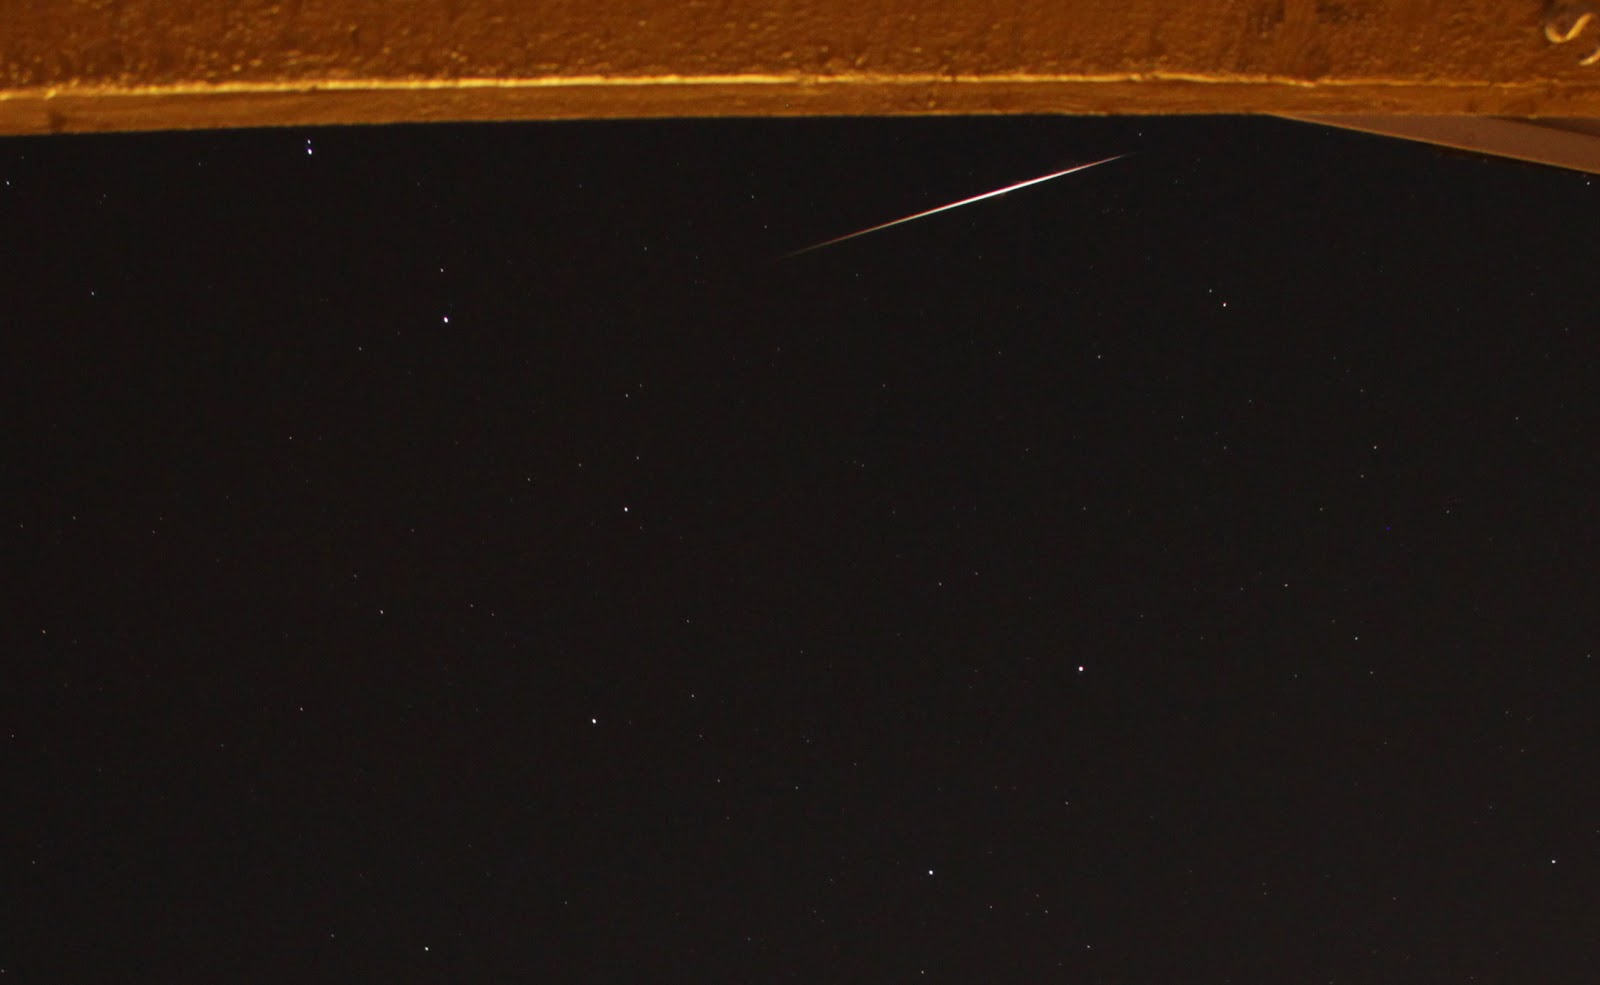 Camelopardalids meteor